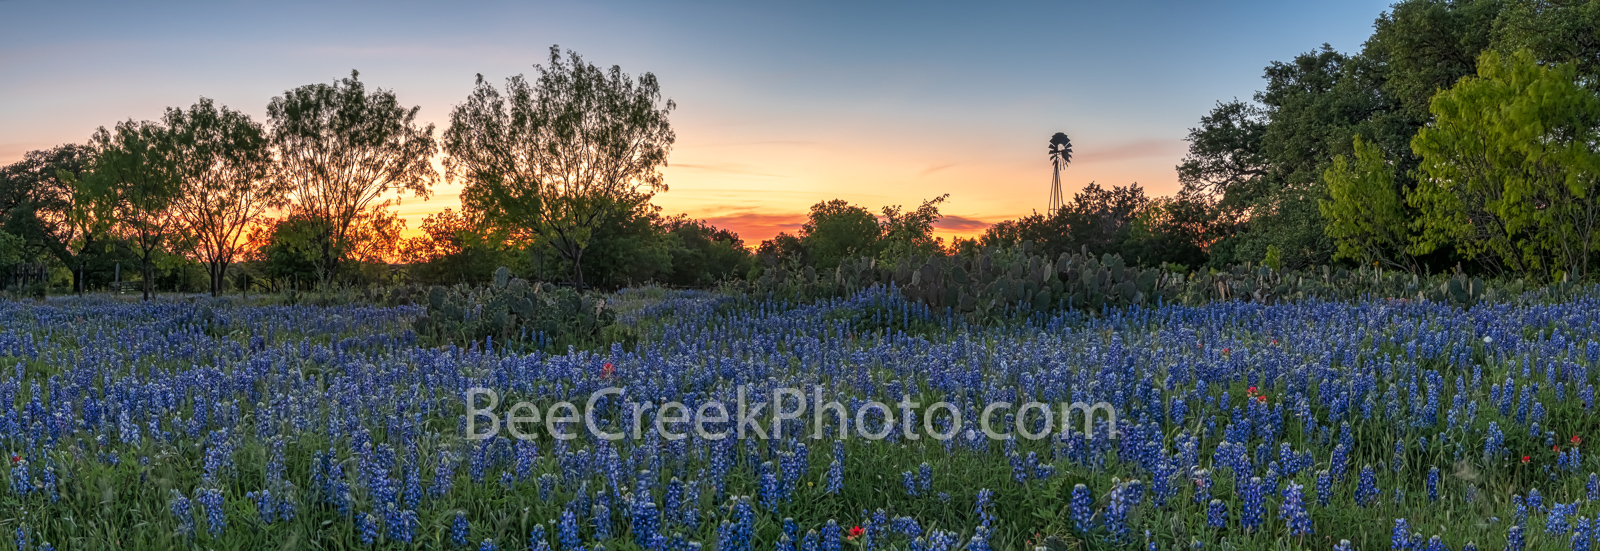 Texas Bluebonnet Sunset Landscape Pano - Texas bluebonnets in the hill country with cactus, a windmill, and a sunset panorama...